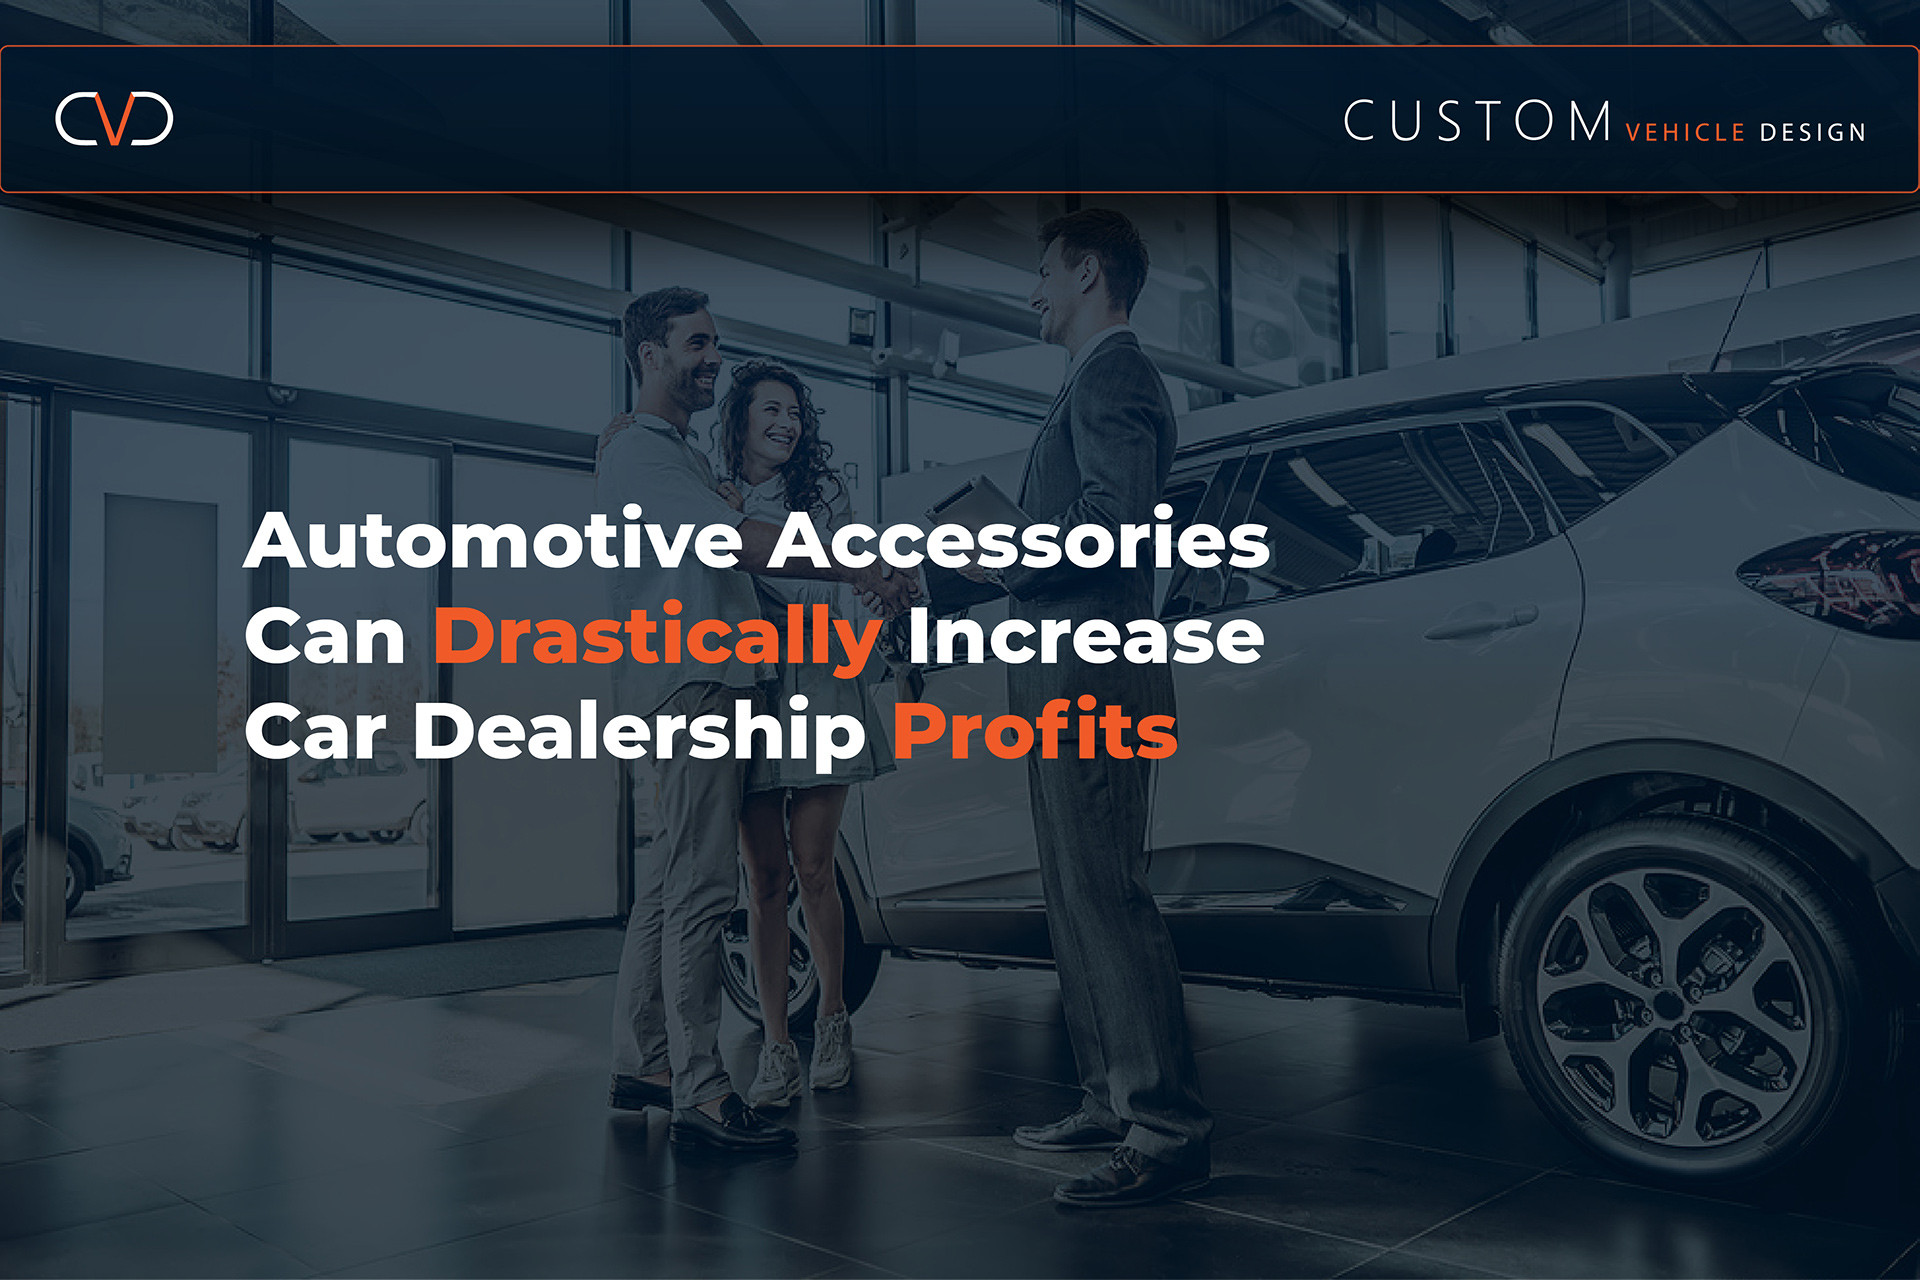 The Missing Profit Center - How Automotive Accessories Can Drastically Increase Car Dealership Profits